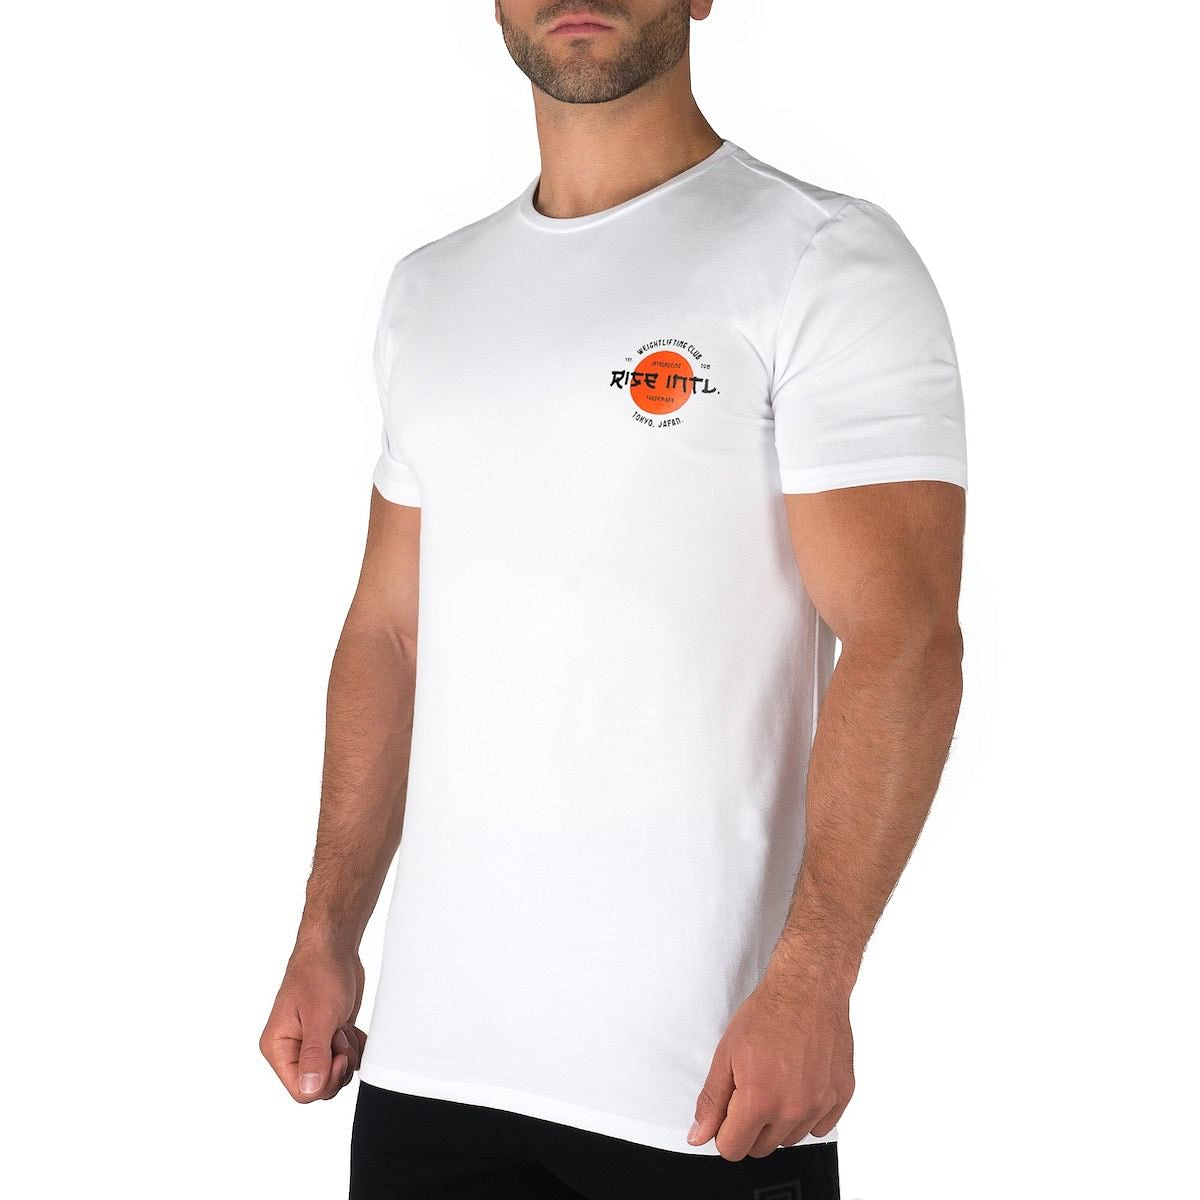 Japan Weightlifting Club Shirt - White